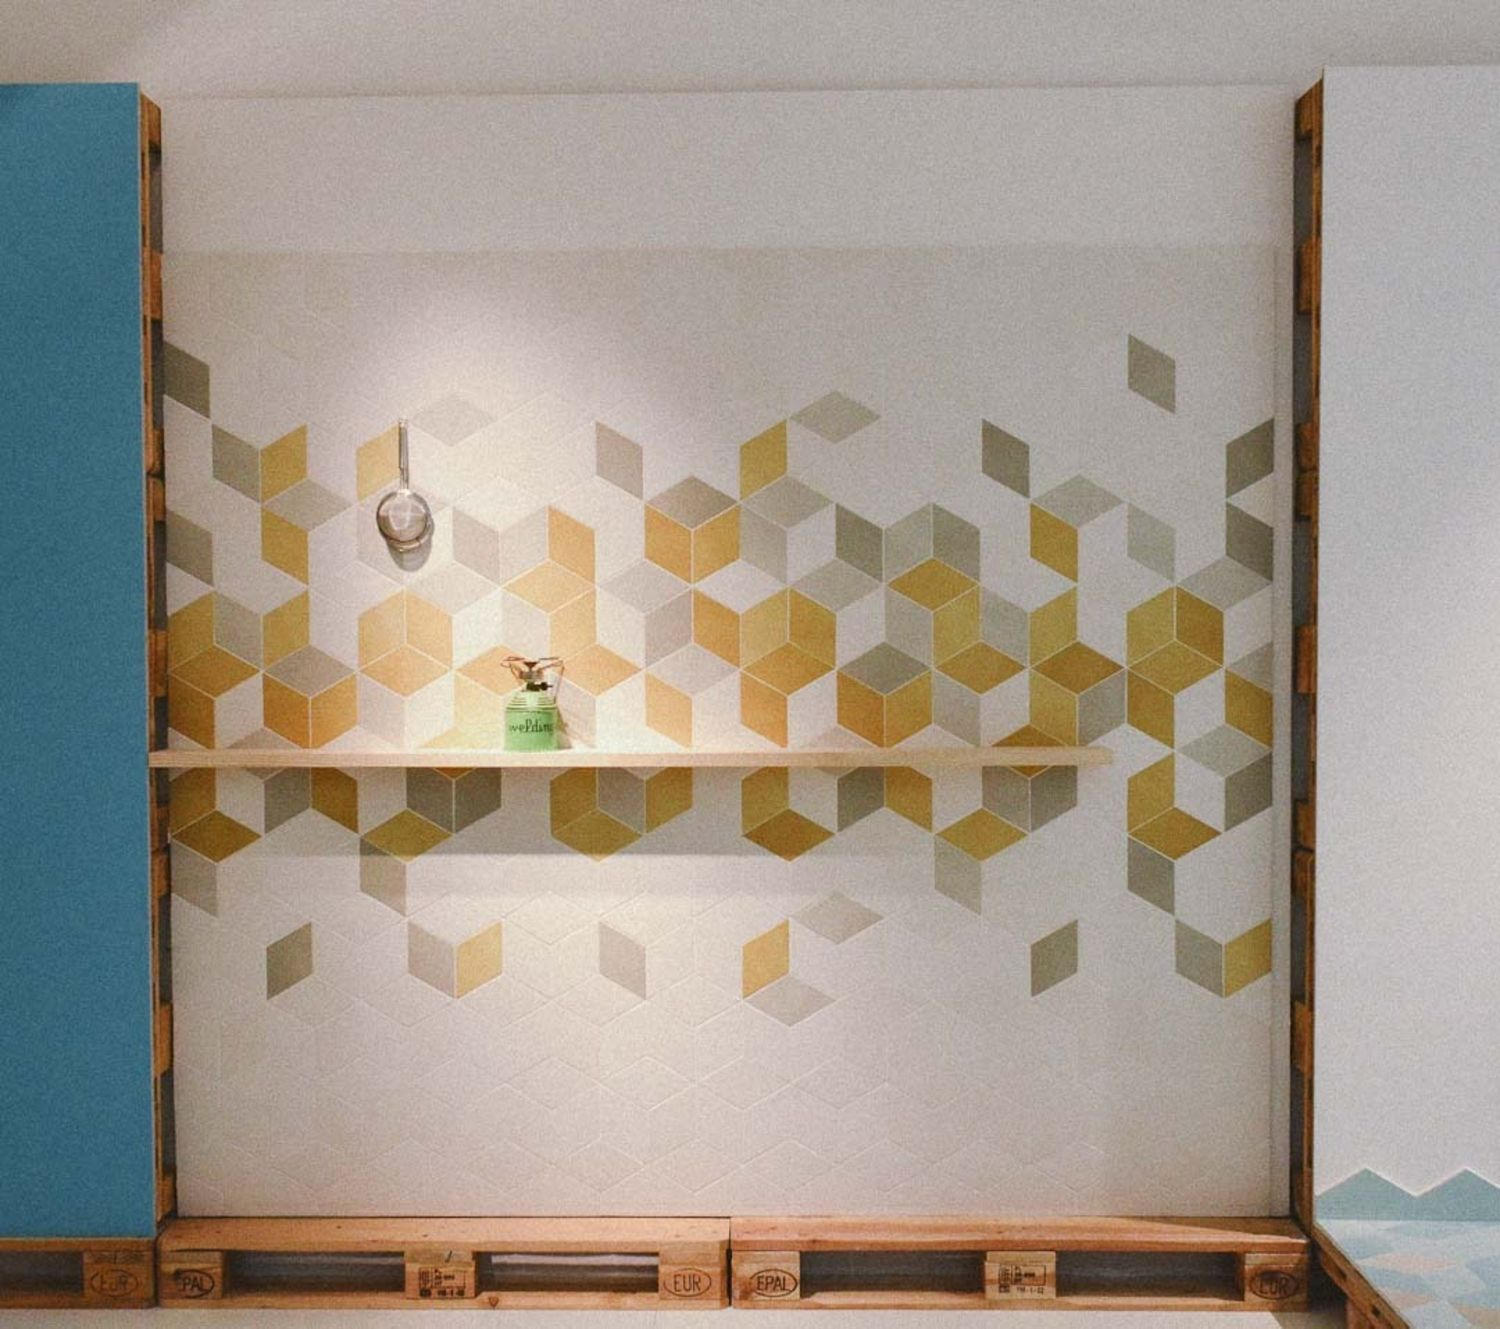 Geometric Tile For The Kitchen From Mutina, Patricia